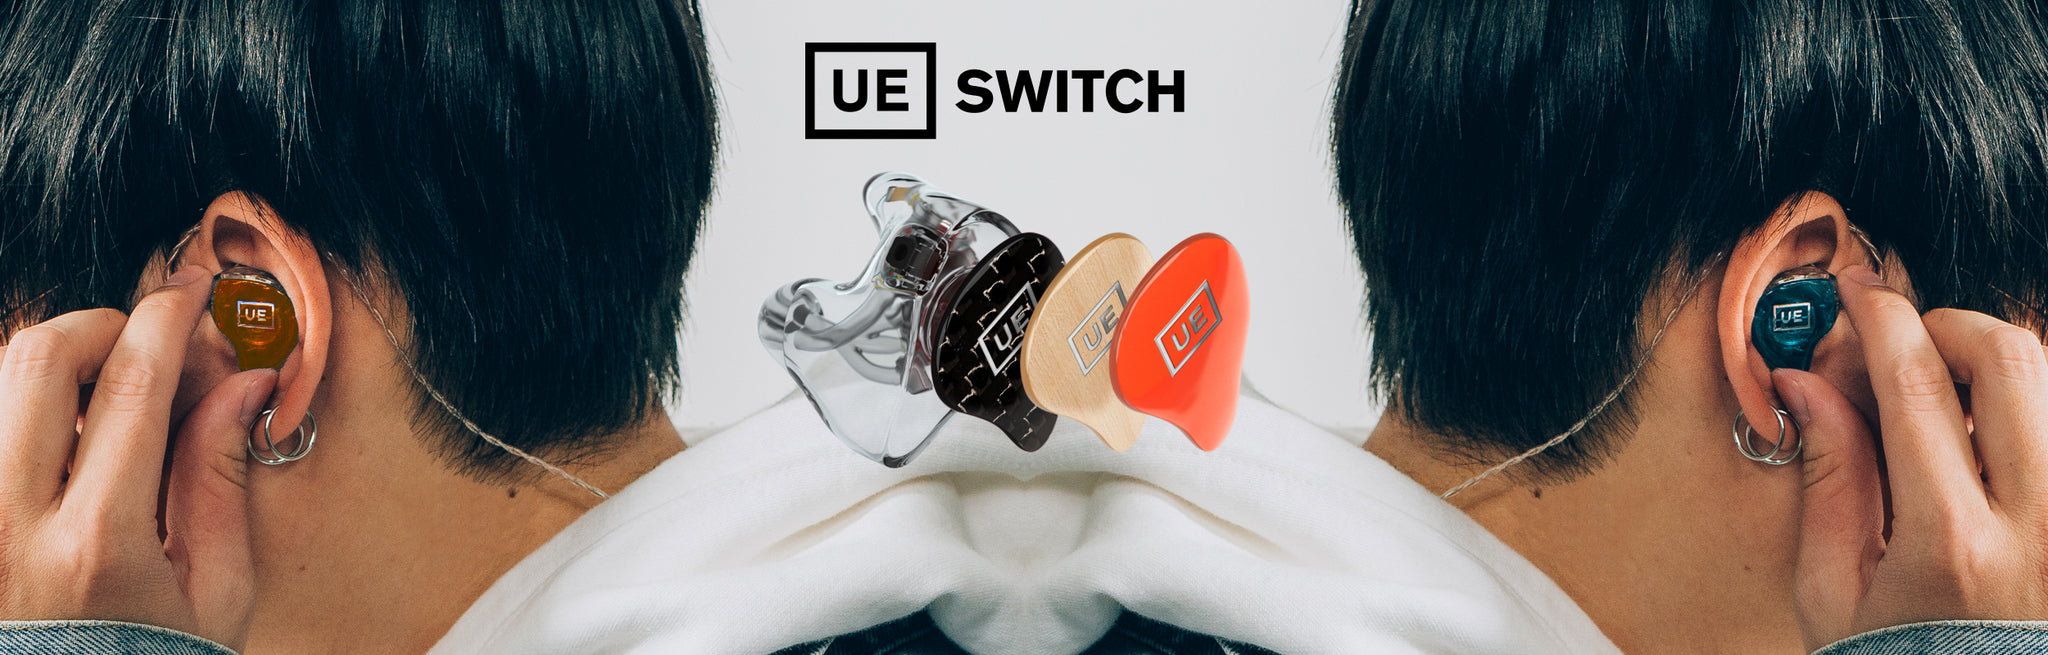 Introducing UE SWITCH Interchangeable Faceplates